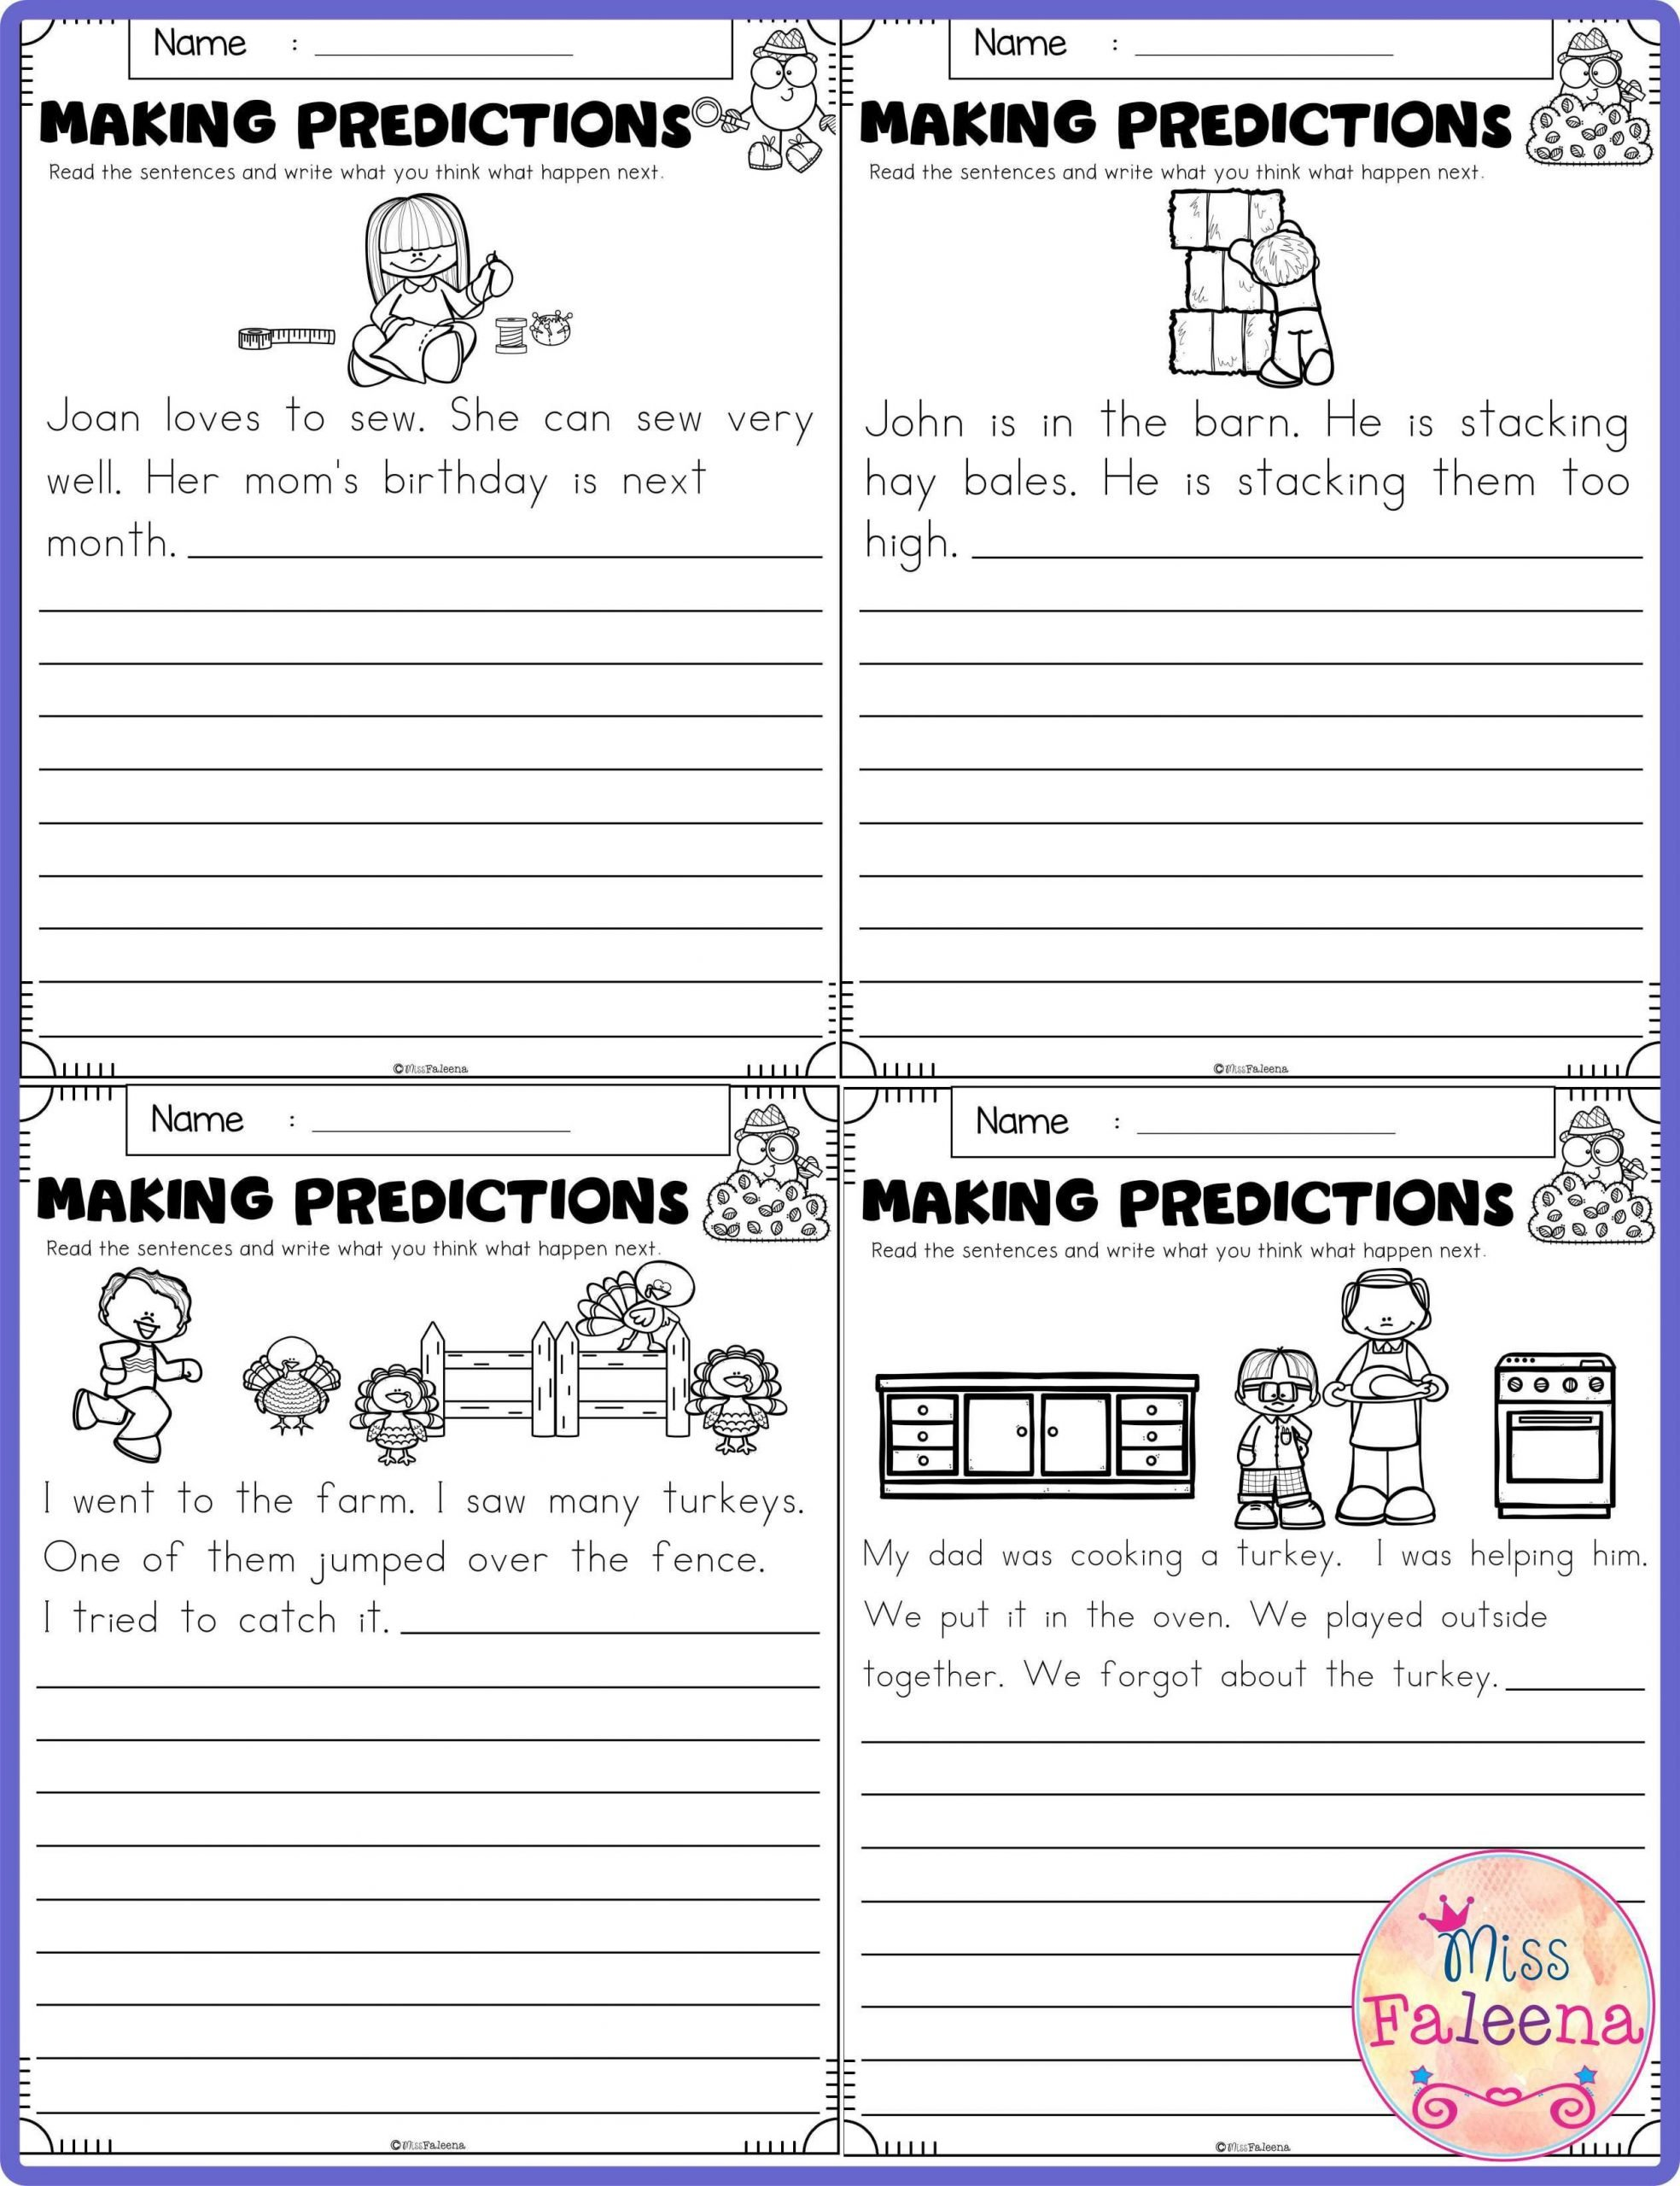 Prediction Worksheets 3rd Grade November Making Predictions Contains with total 30 Pages Of